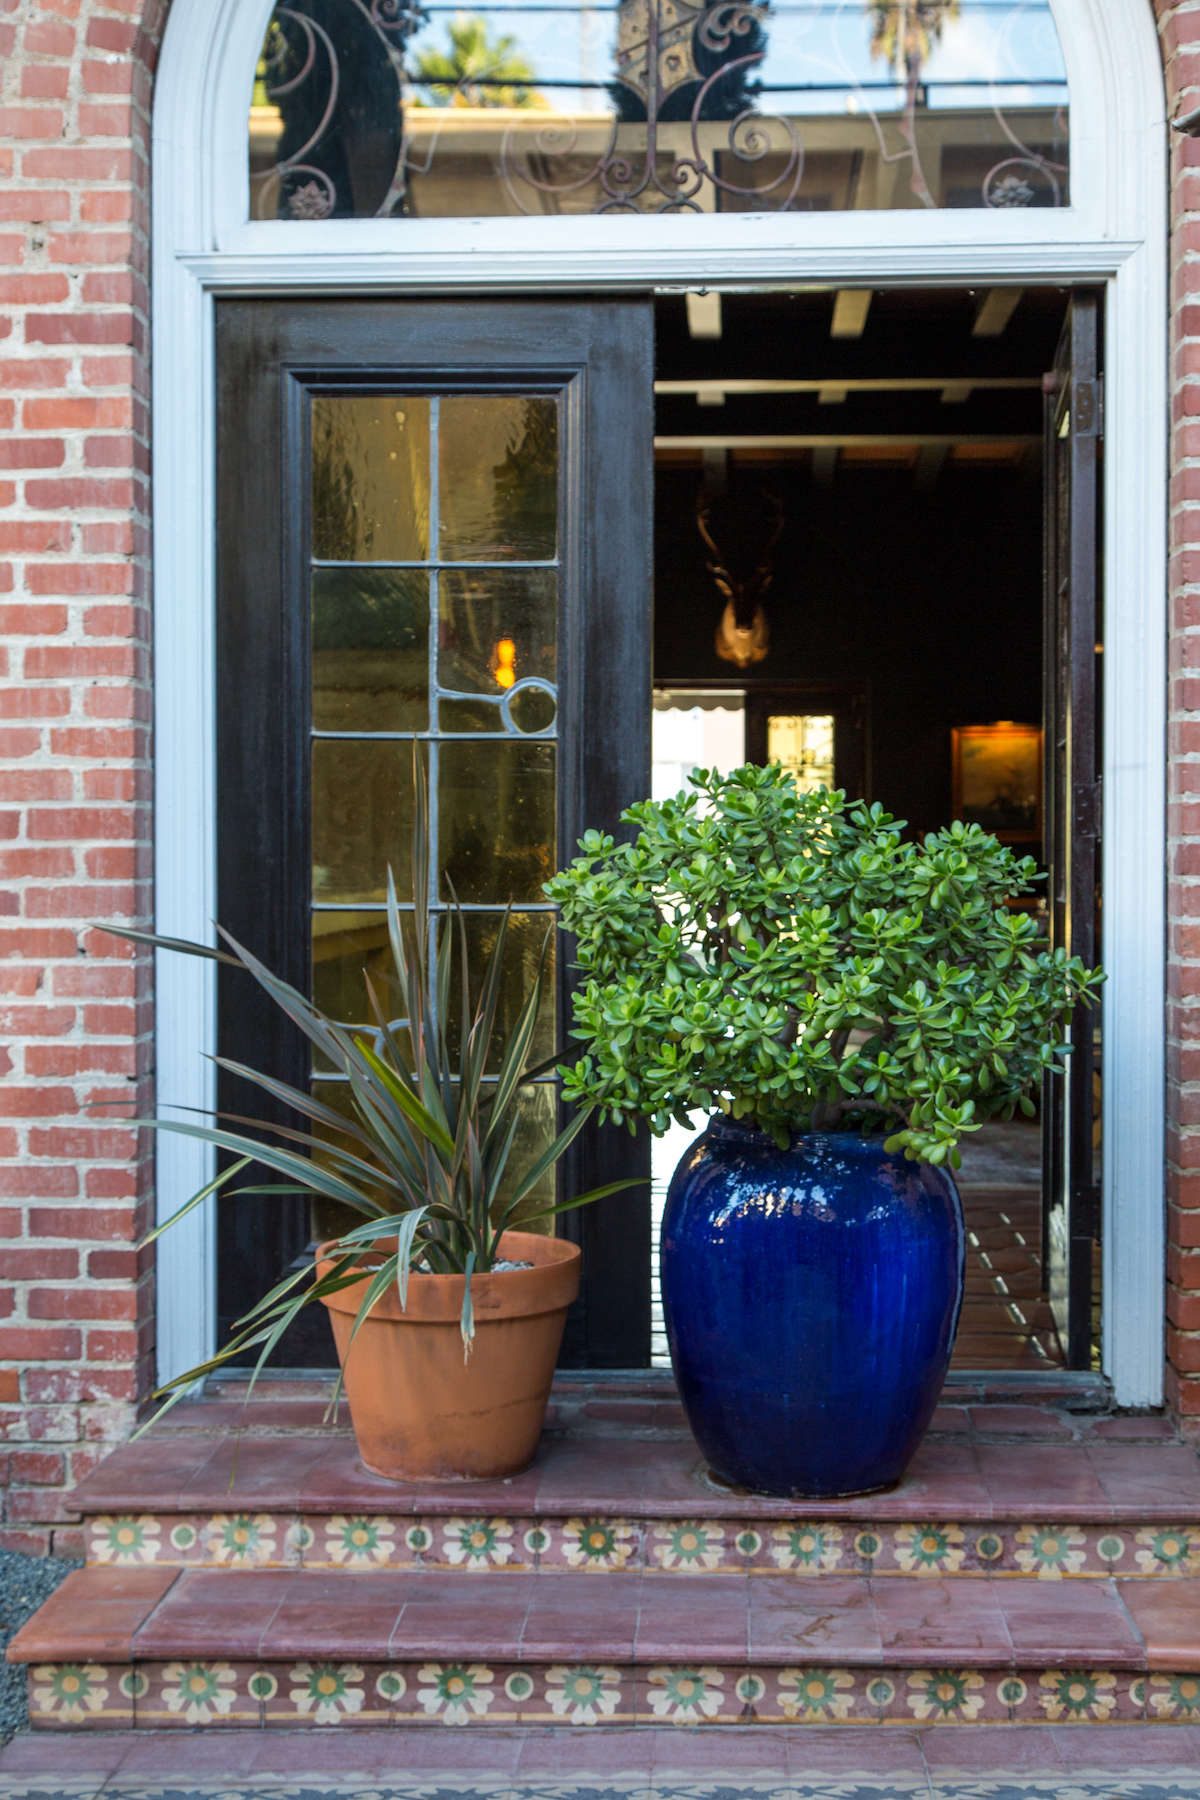 Enchanted Garden Whimsy and Wit at Palihouse in Santa